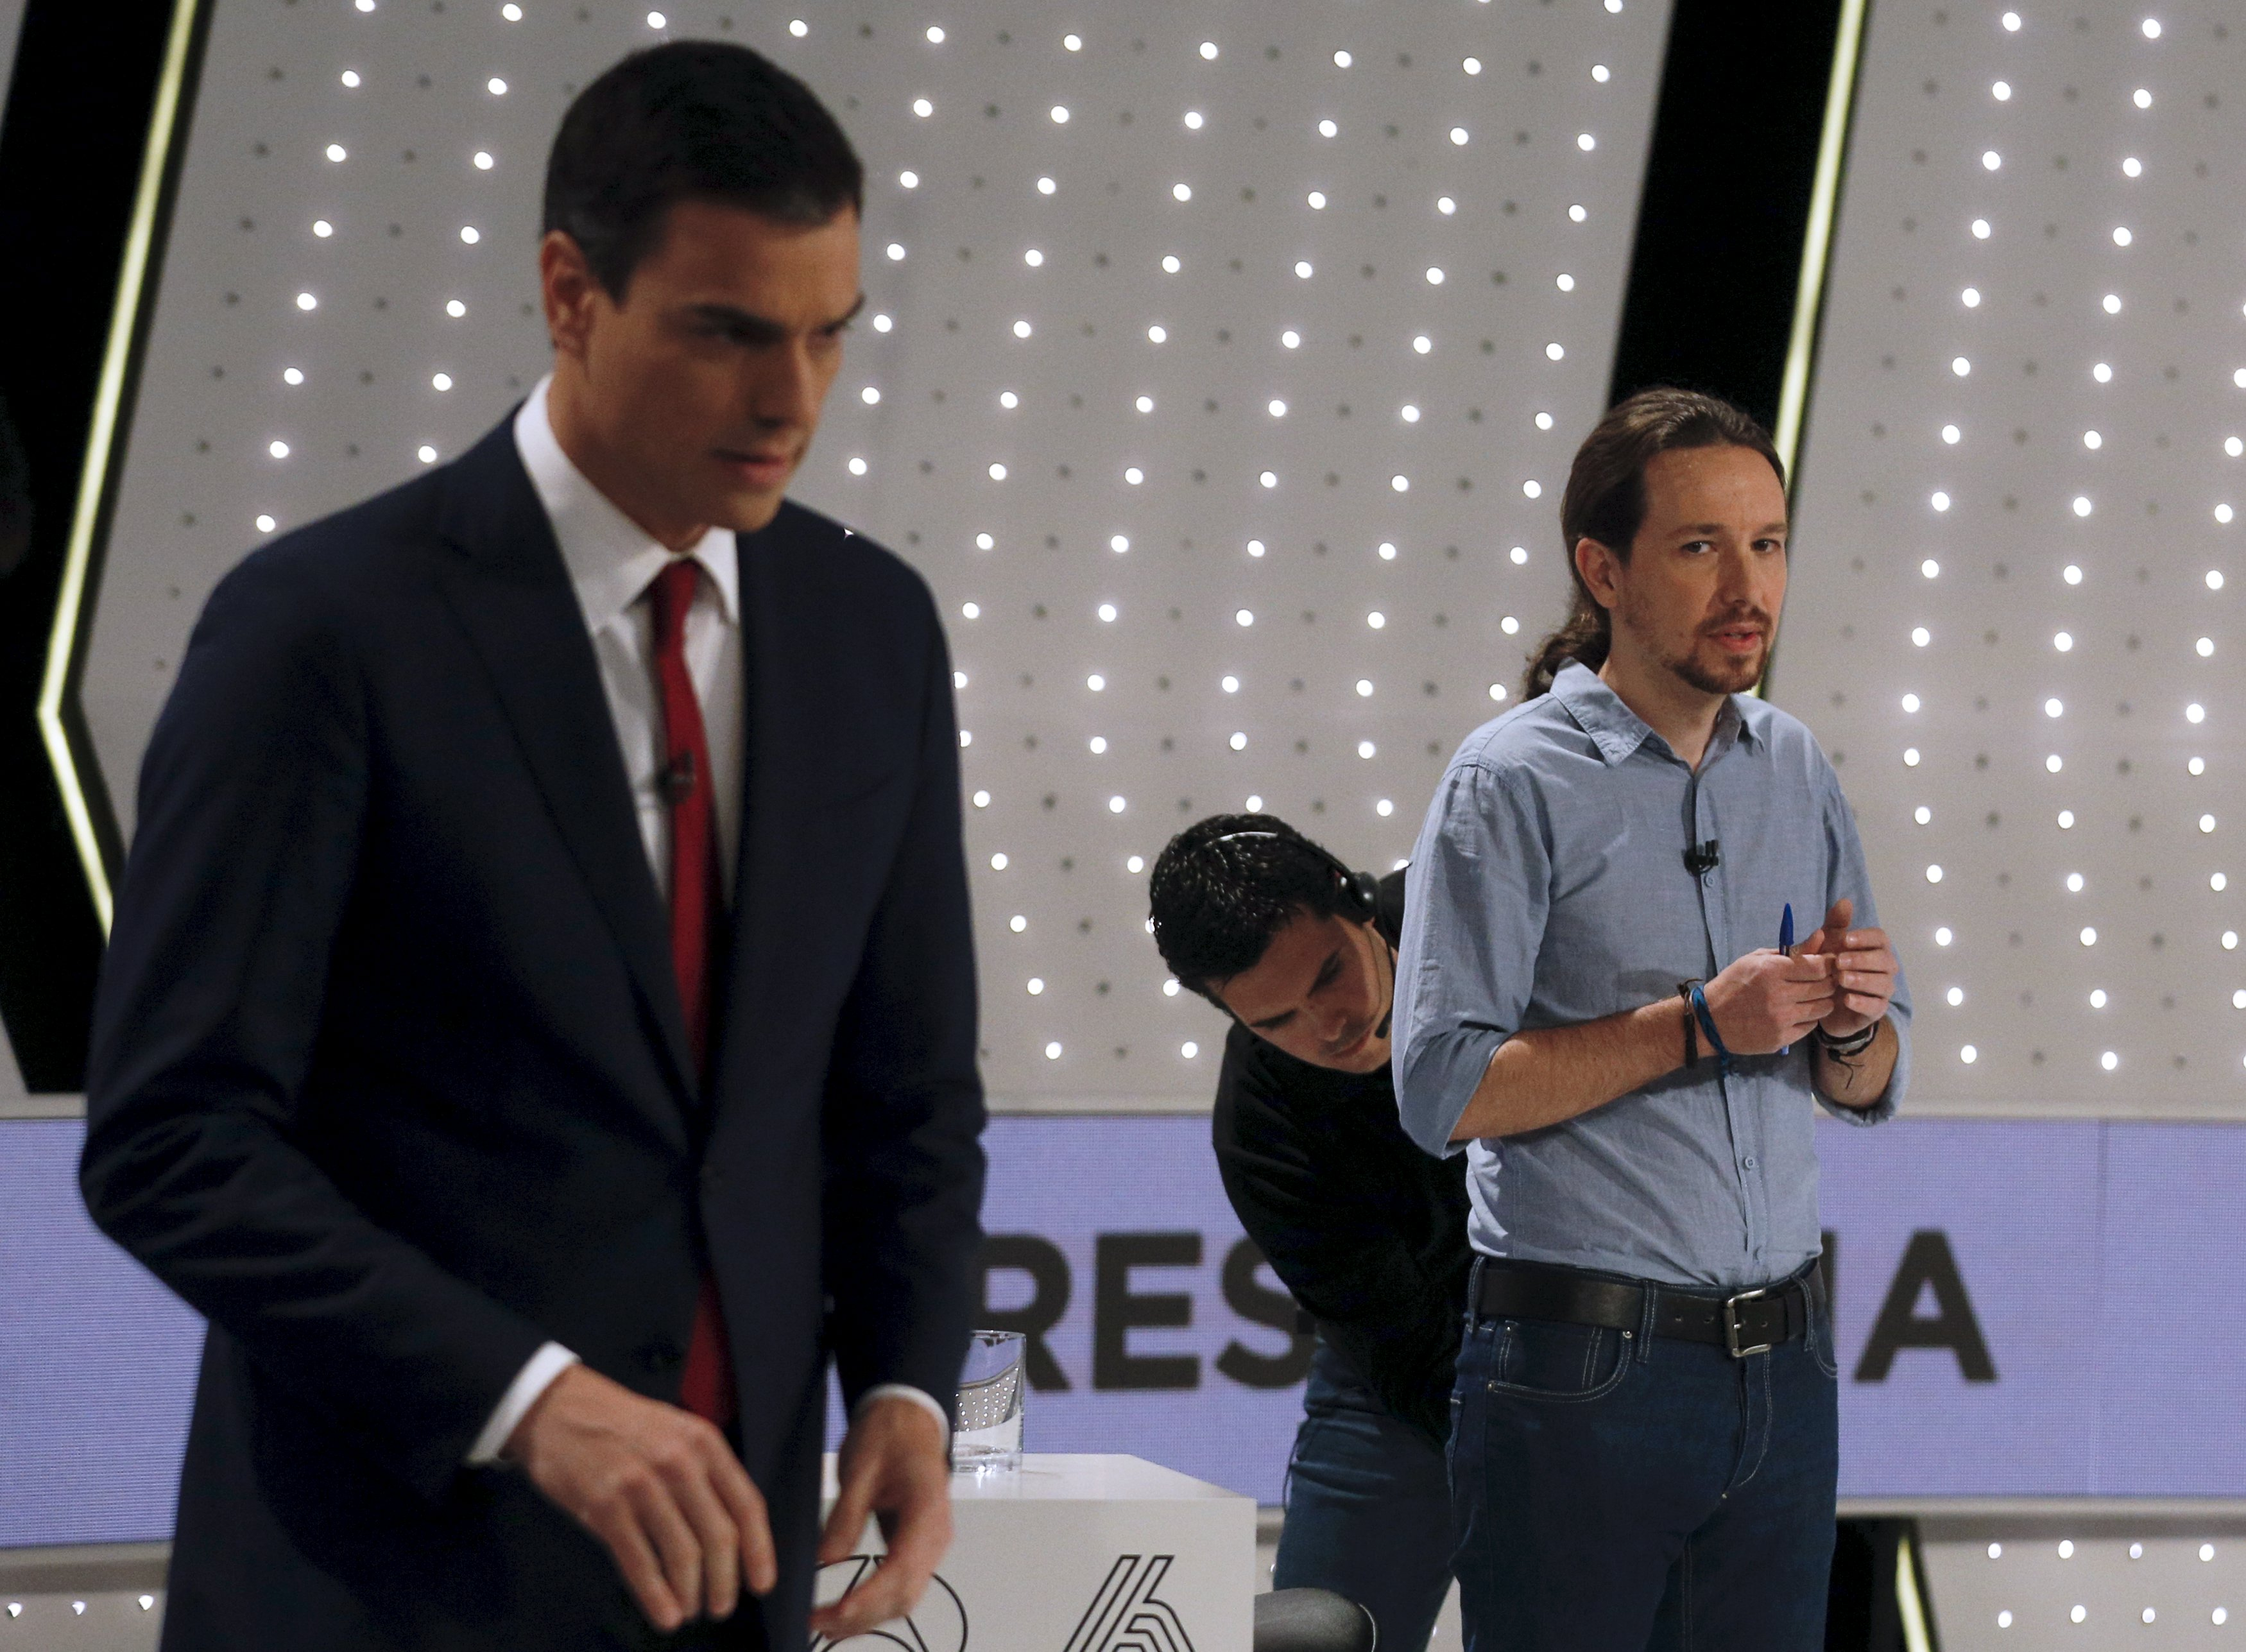 Podemos (We Can) party leader Pablo Iglesias (R) has his microphone adjusted by a technician as Socialist party (PSOE) leader Pedro Sanchez stands before a live debate hosted by Spanish media group Atresmedia in San Sebastian de los Reyes, near Madrid, Spain, December 7, 2015. REUTERS/Sergio Perez